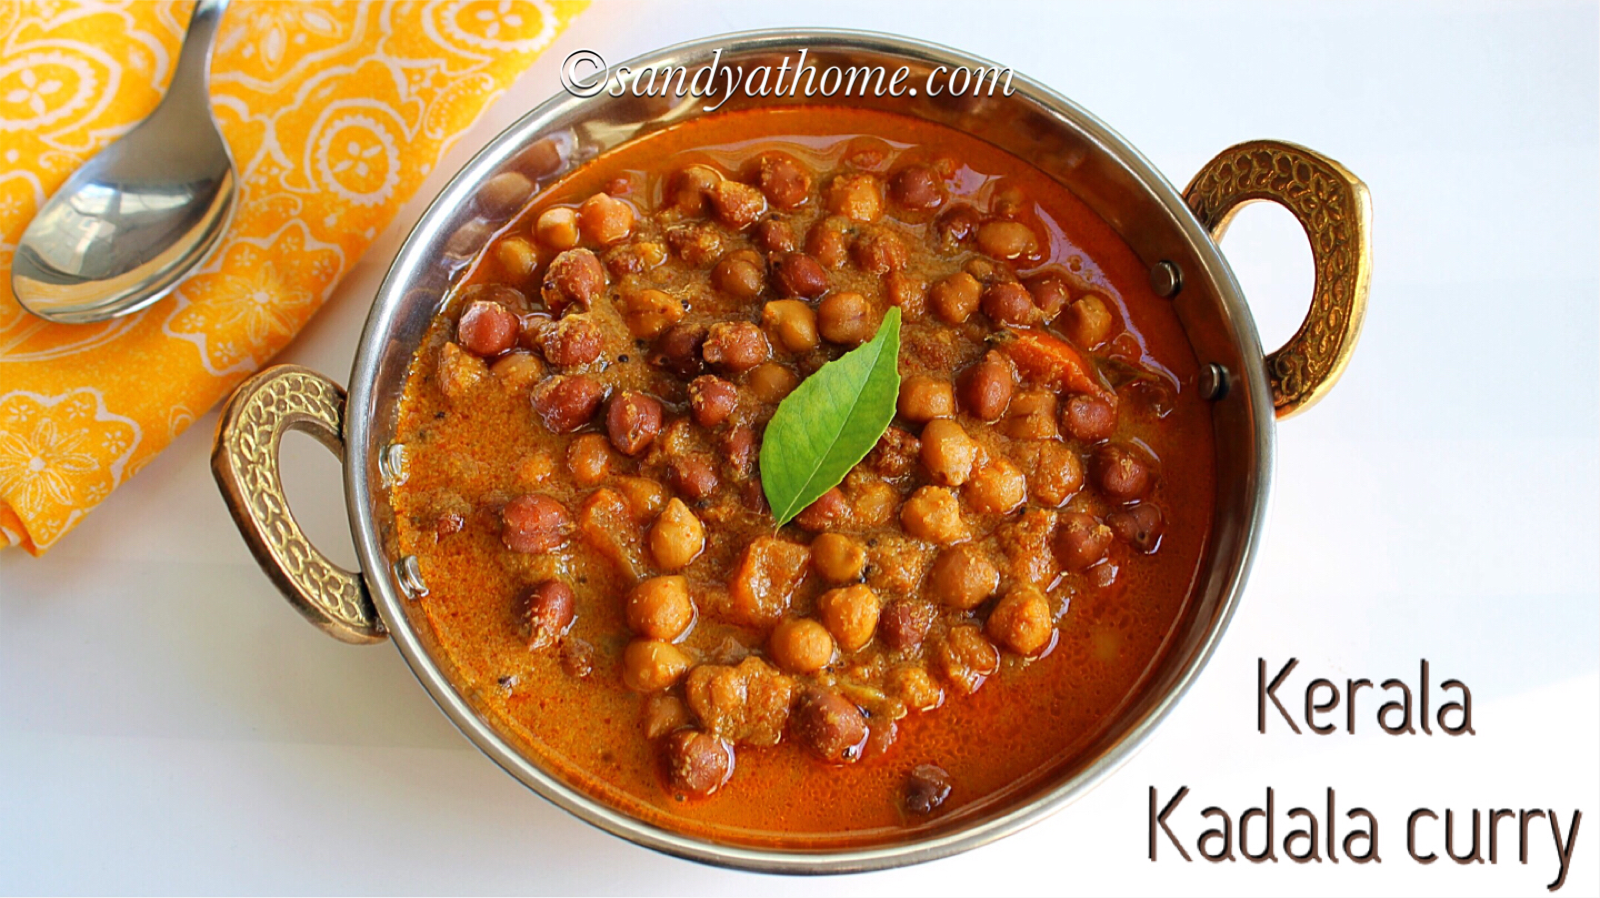 kerala kadala curry recipe, kadala curry for puttu and appam